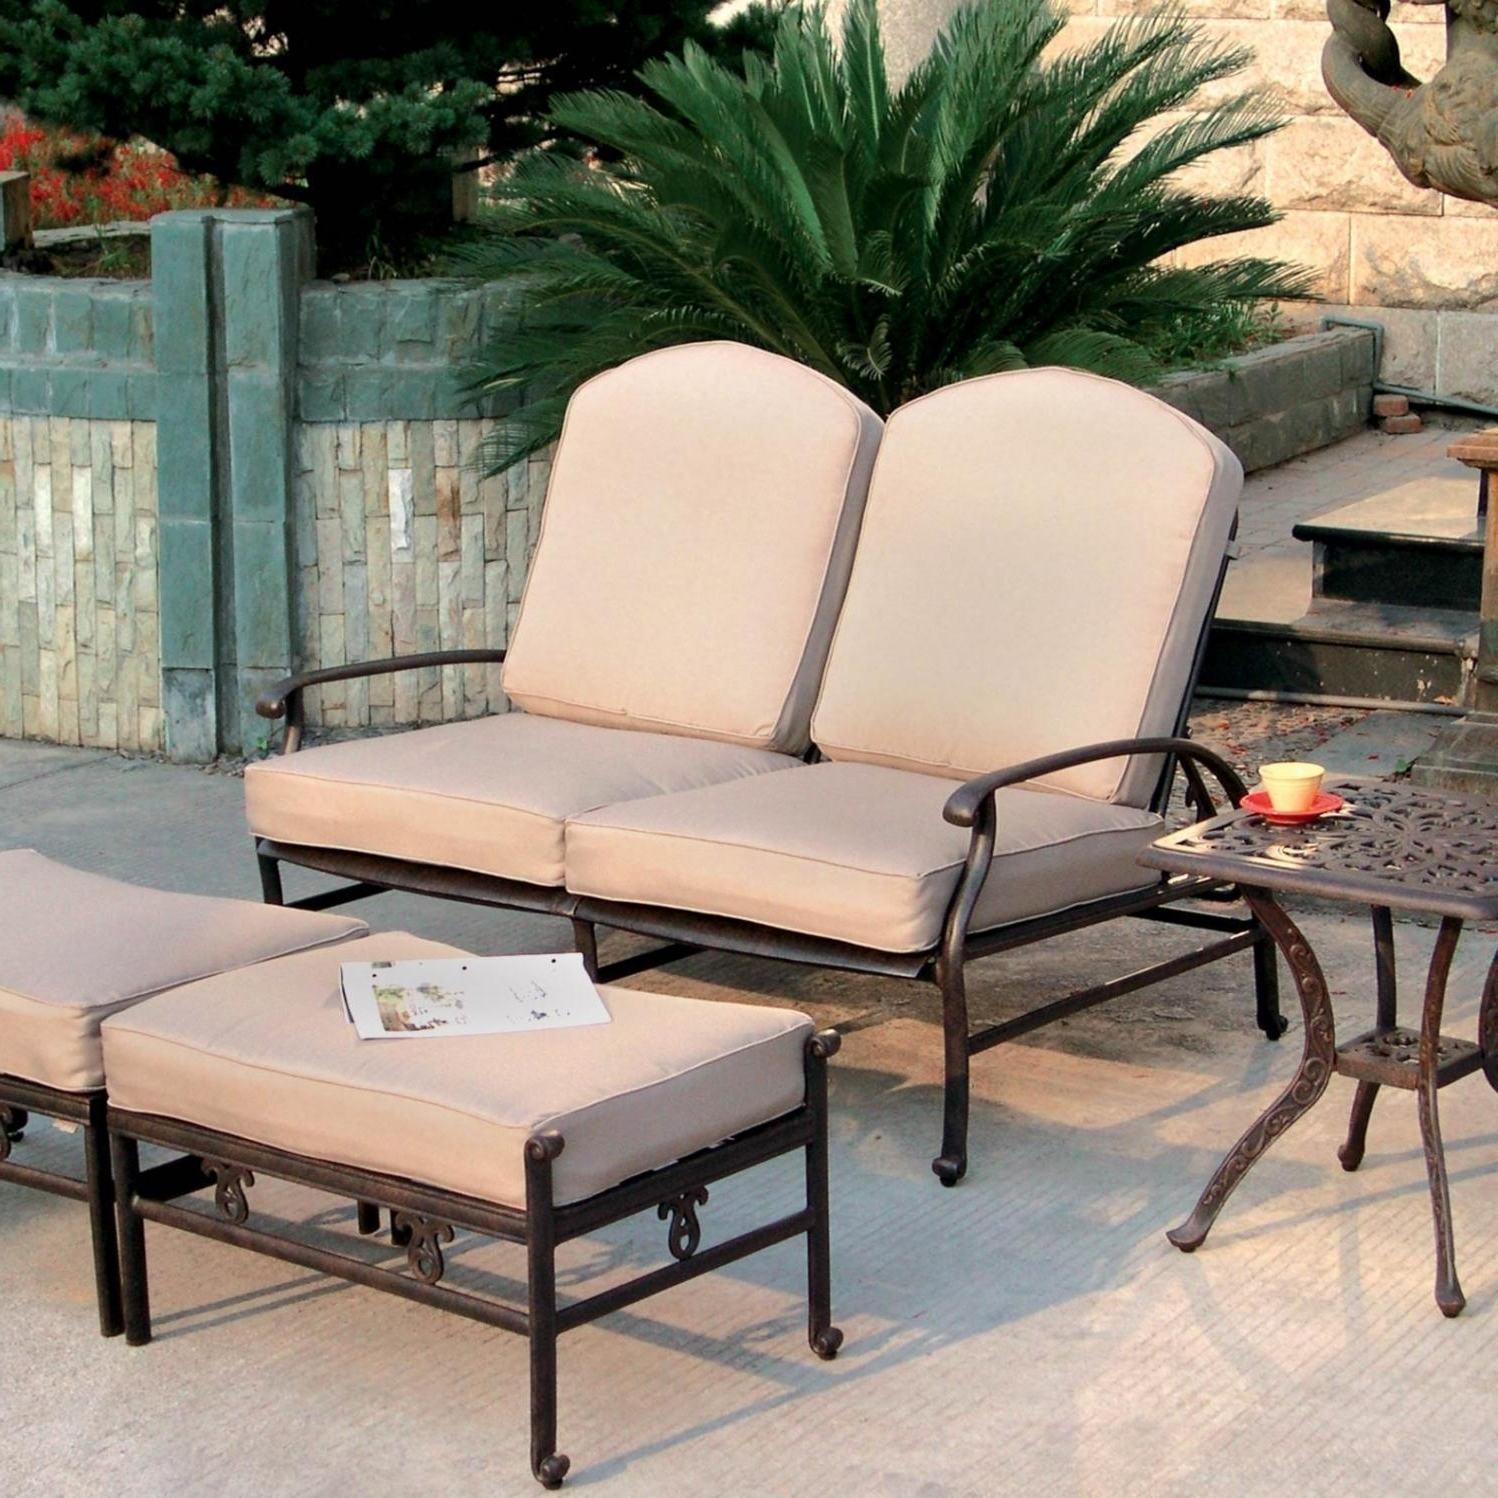 Patio Conversation Sets With Ottomans Within Well Liked Darlee Catalina 3 Piece Cast Aluminum Reclining Patio Loveseat Set (View 14 of 20)